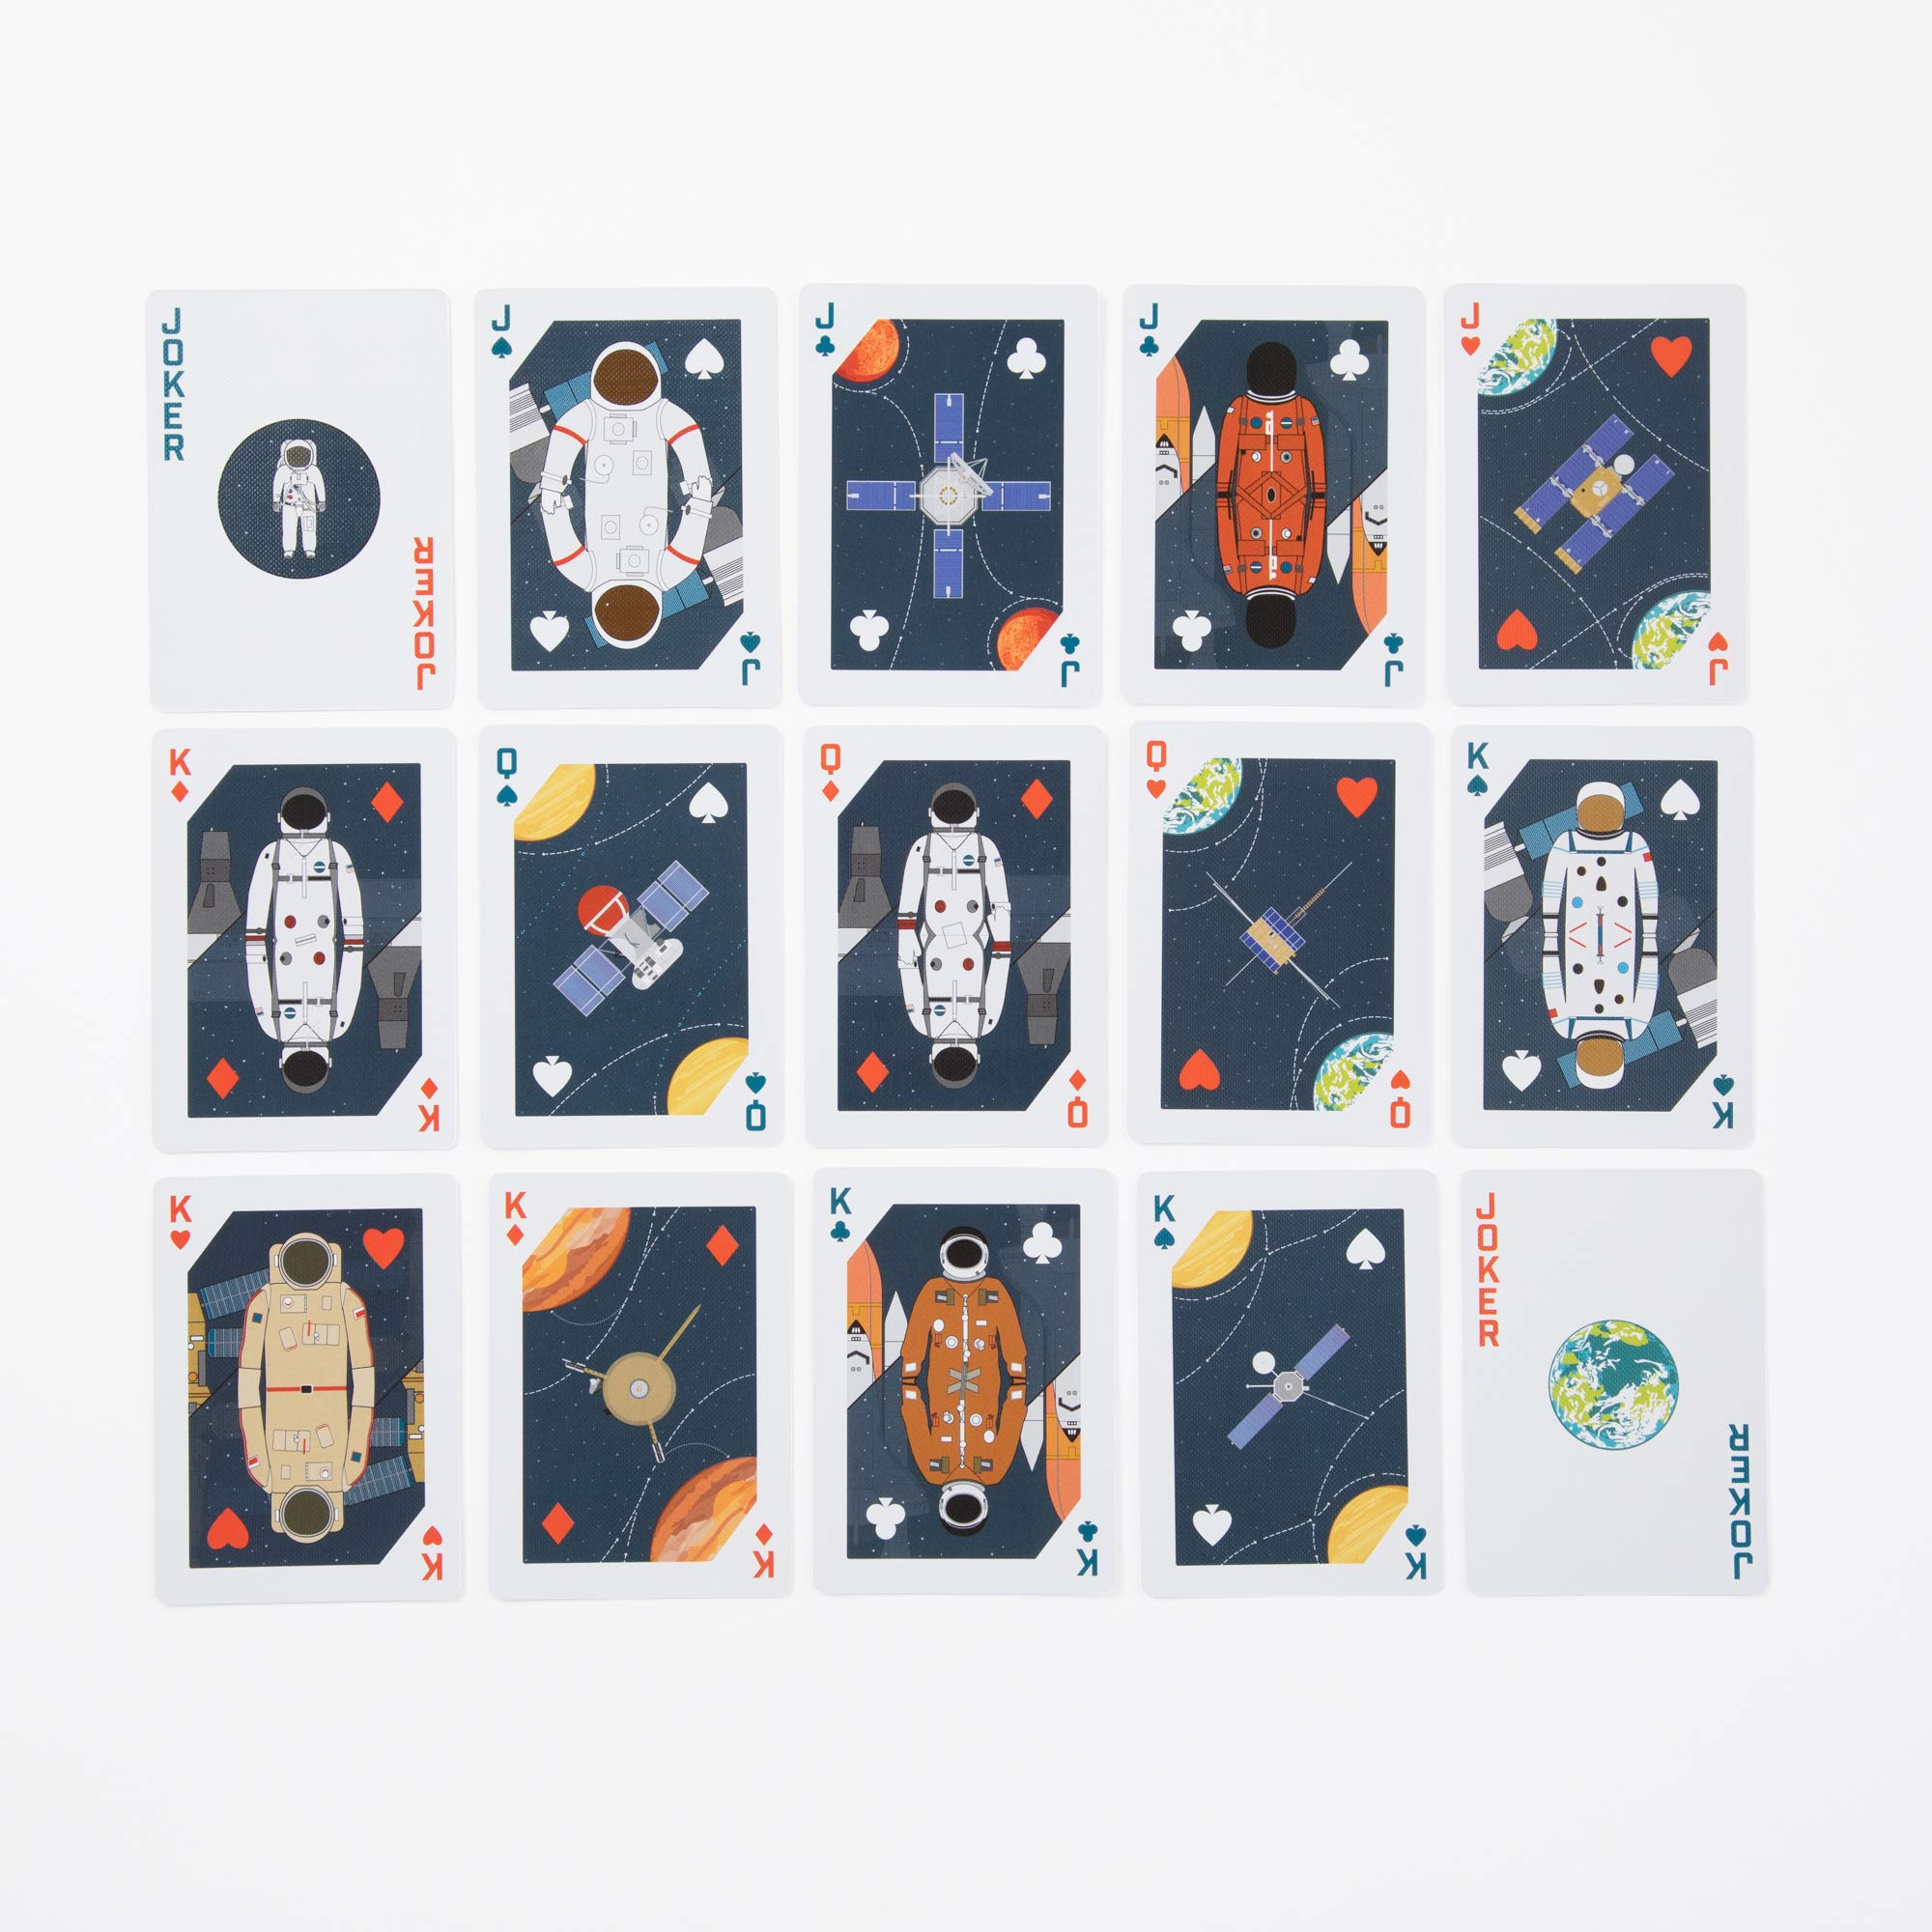 Face cards included